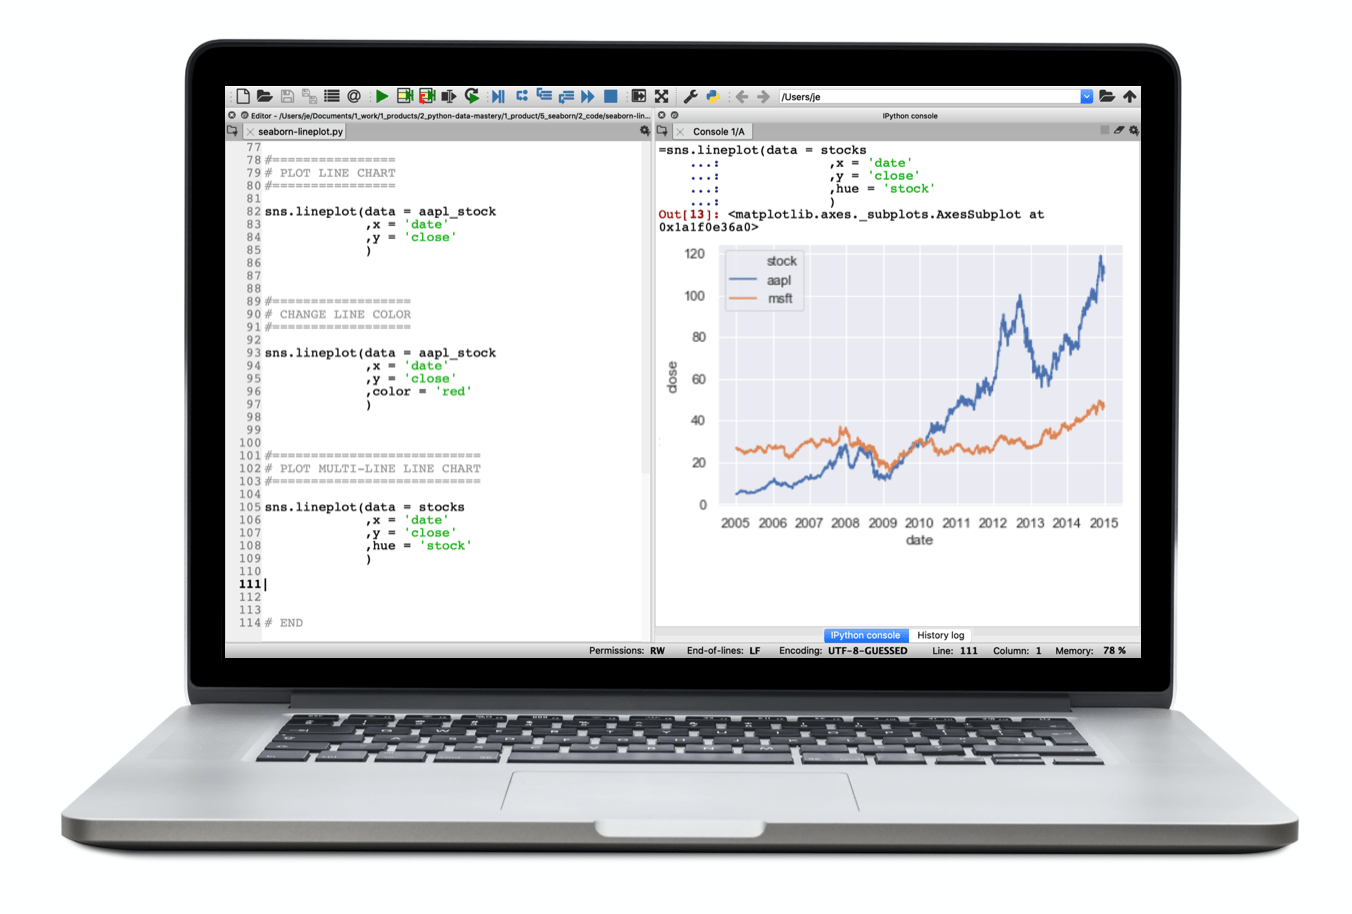 An image of a laptop with Seaborn code in an IDE, and a corresponding line chart.